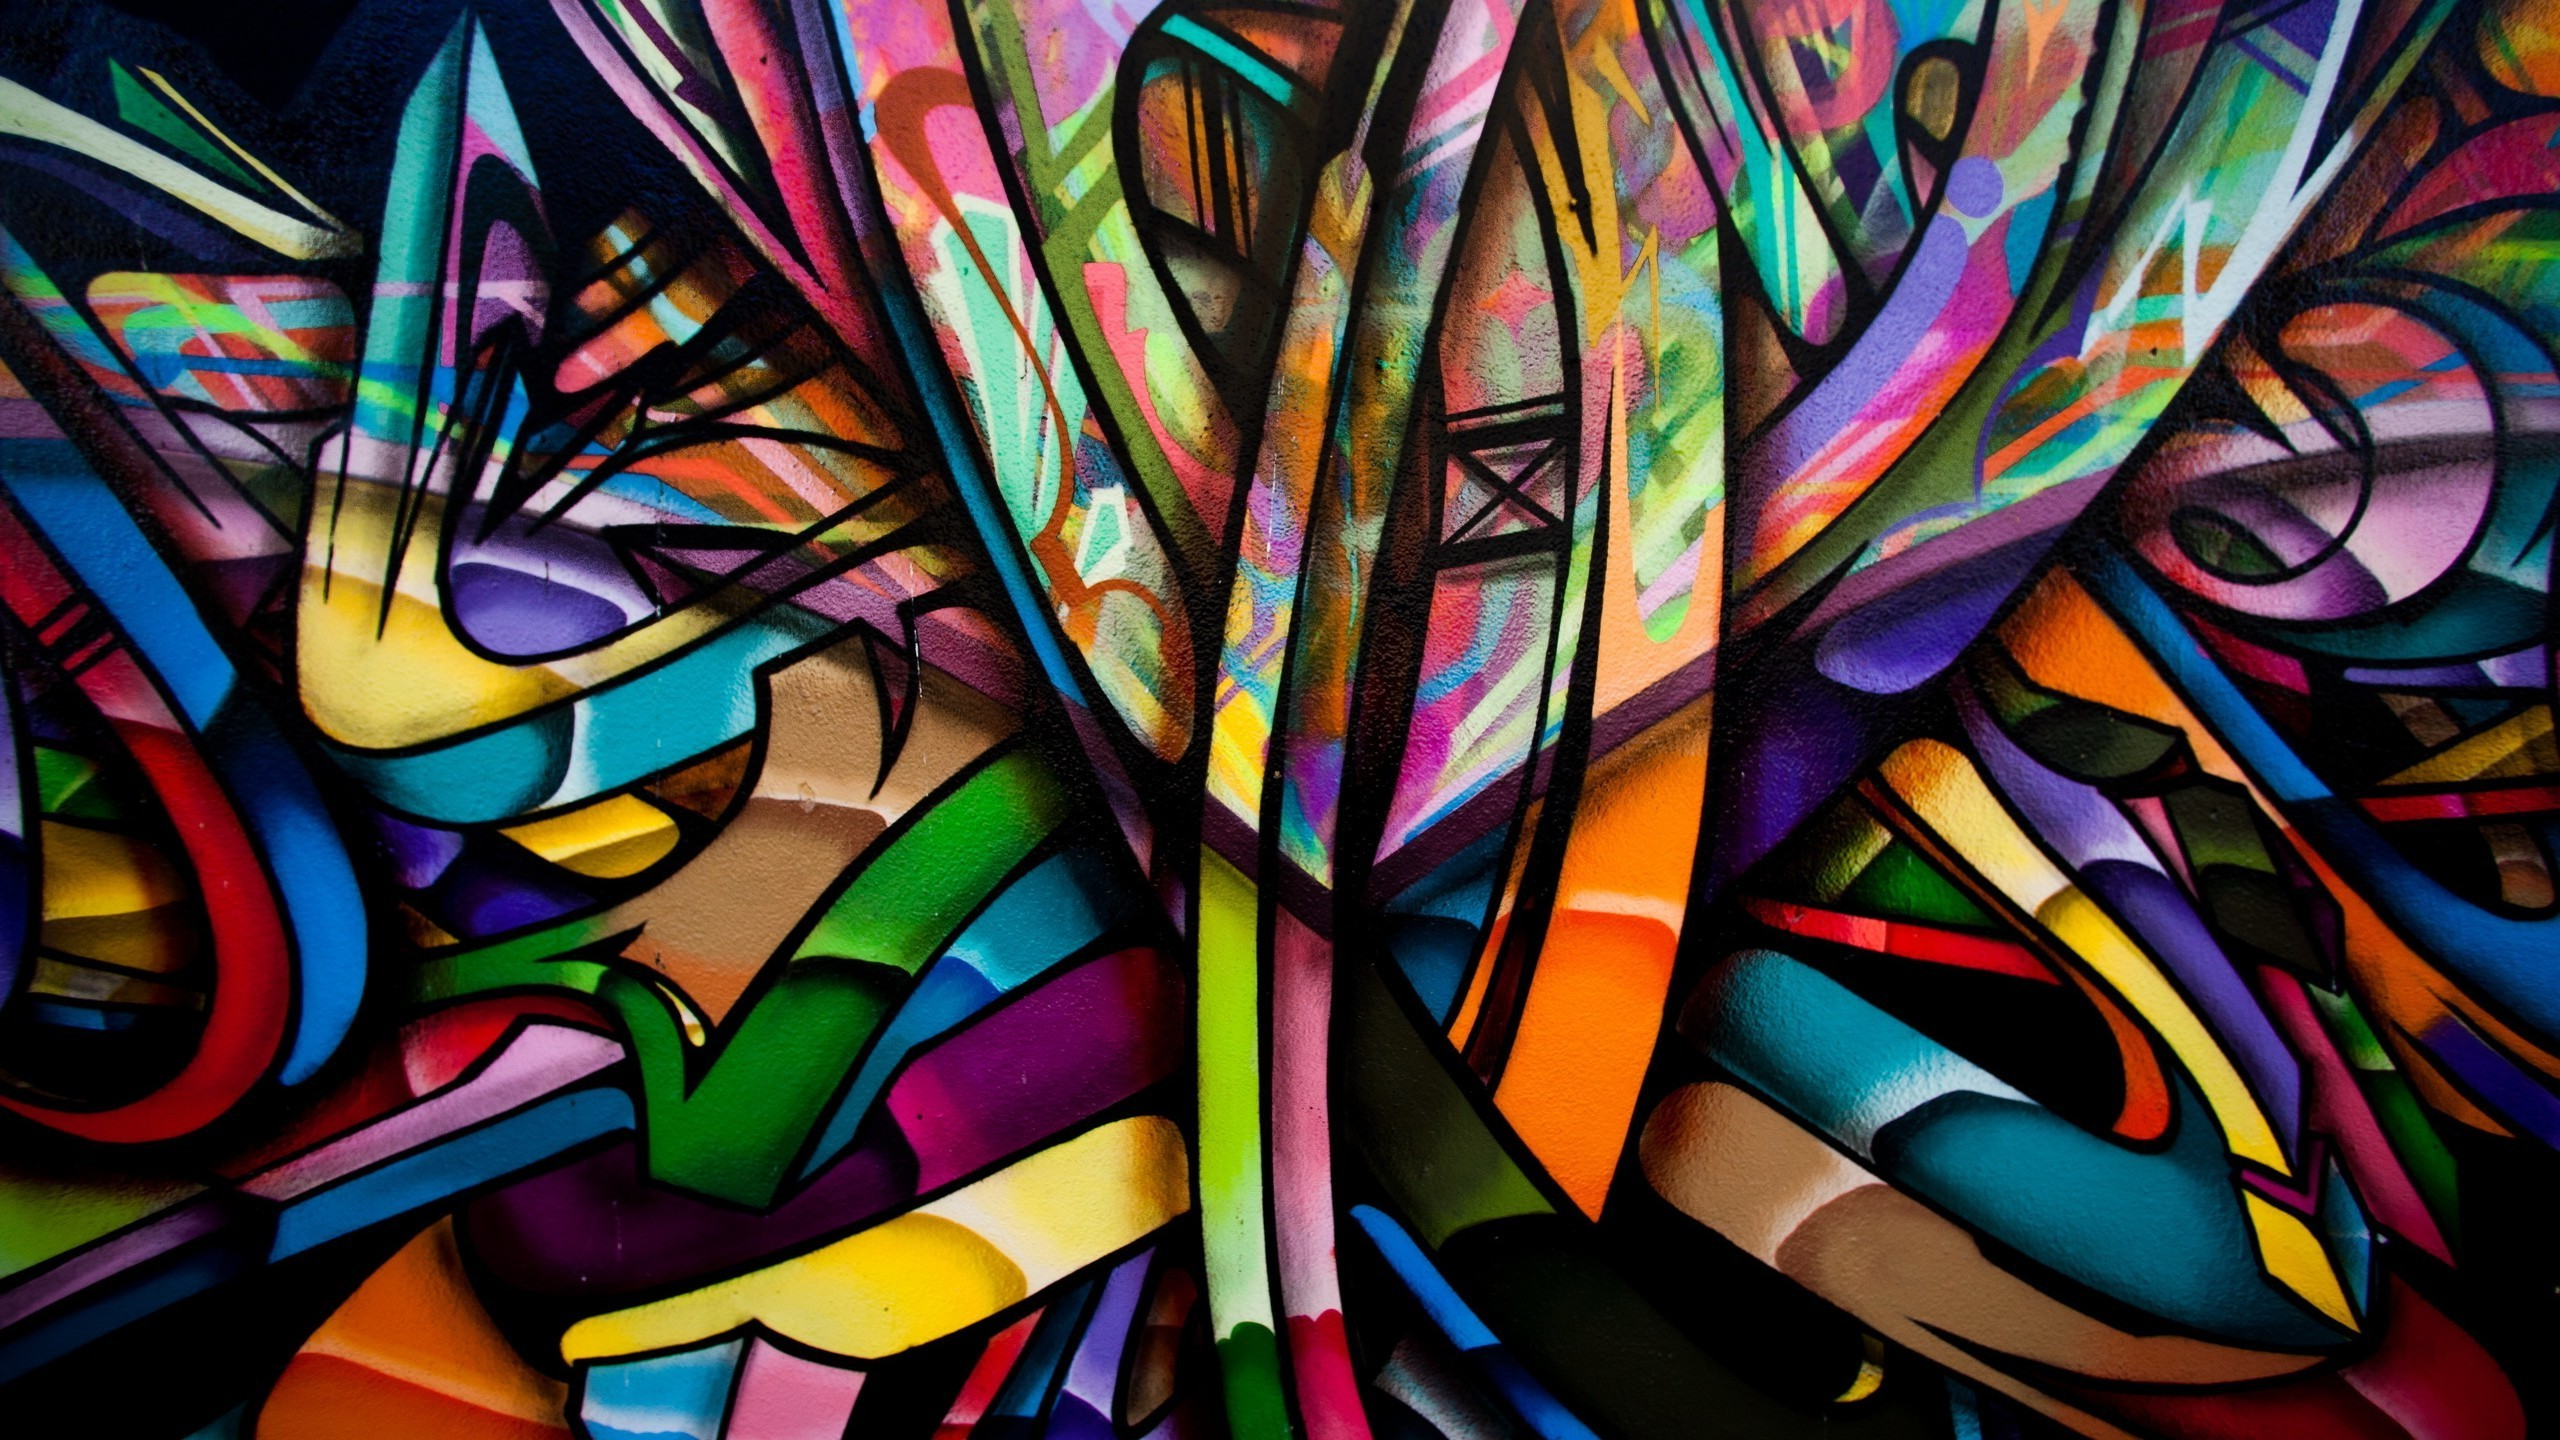 abstract, Colorful, Graffiti, Walls, Artwork, Painting Wallpapers HD /  Desktop and Mobile Backgrounds